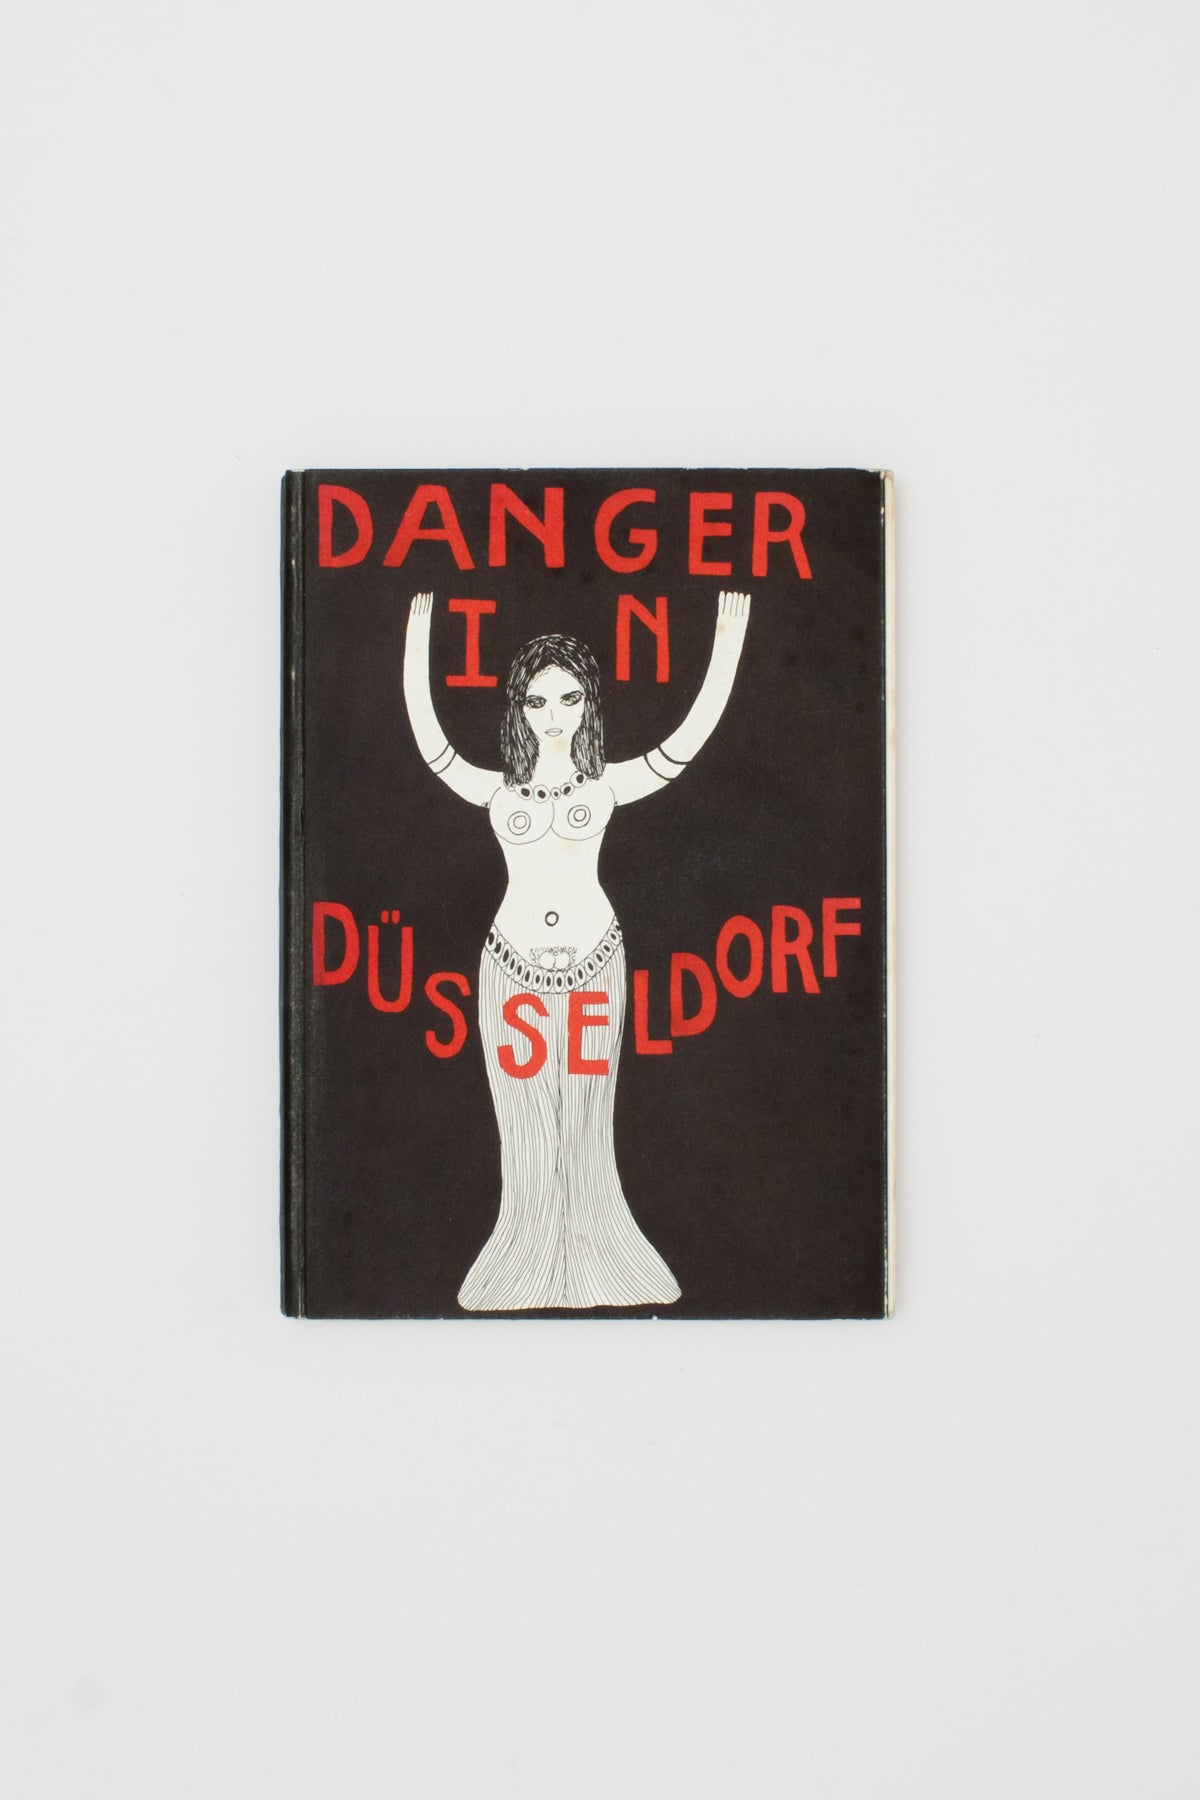 Danger in Dusseldorf (or) I am Not What I Seem - Dorothy Iannone